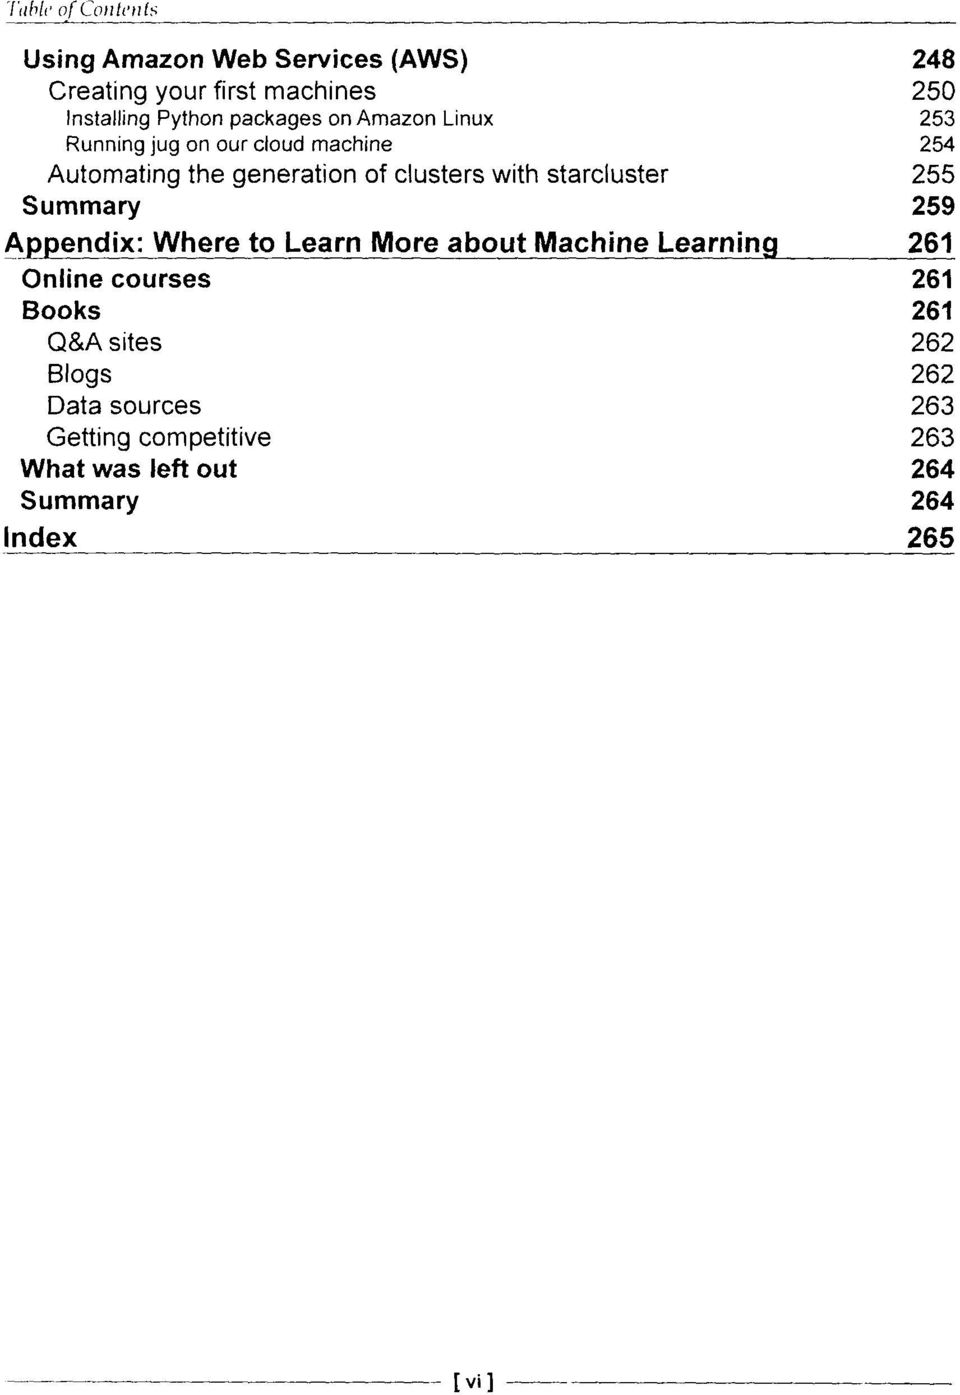 starcluster 255 Summary 259 Appendix: Where to Learn More about Machine Learning 261 Online courses 261 Books